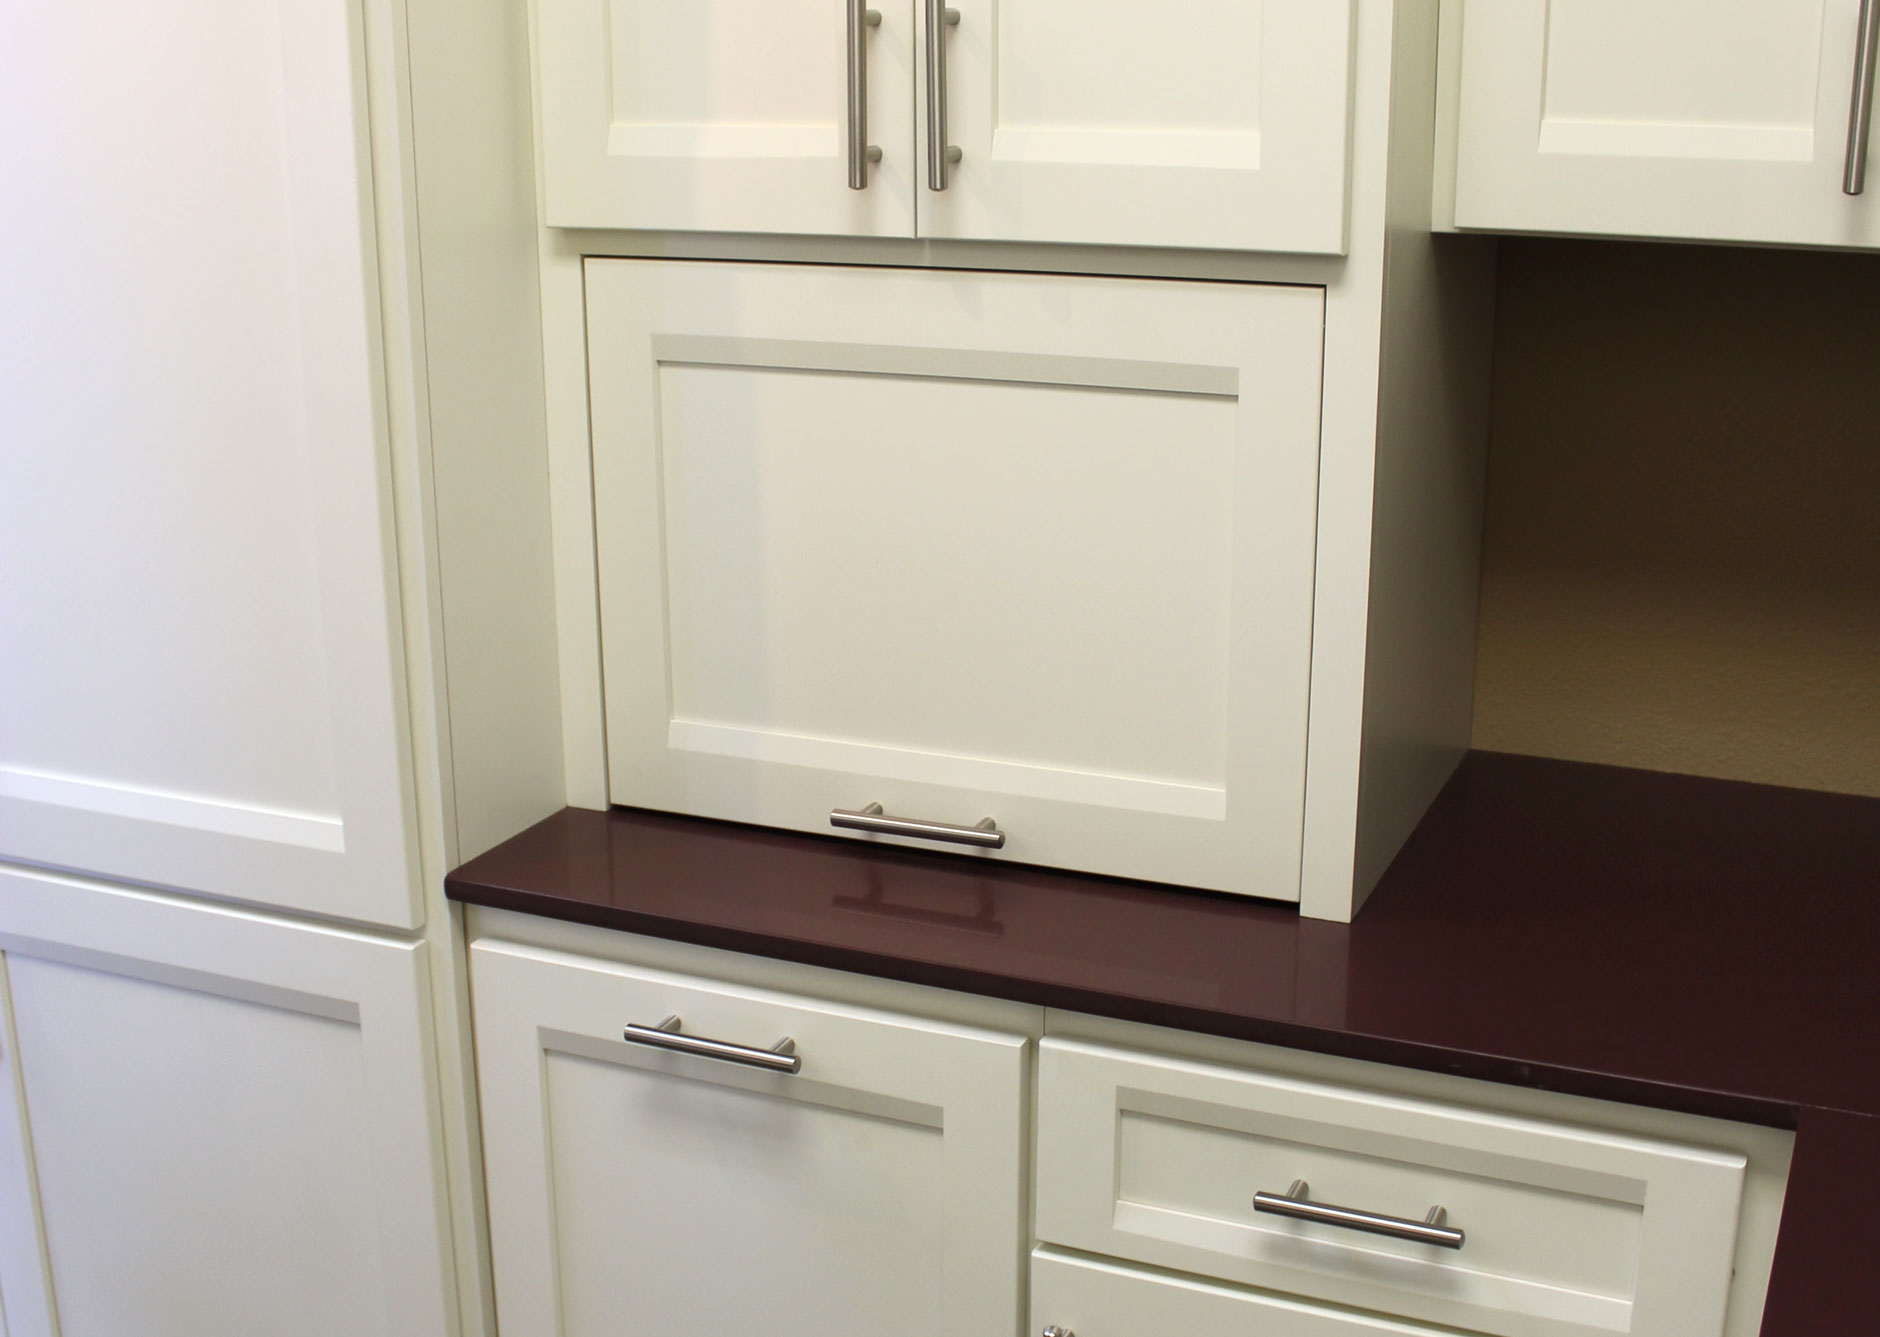 Appliance Storage Burrows Cabinets Central Texas